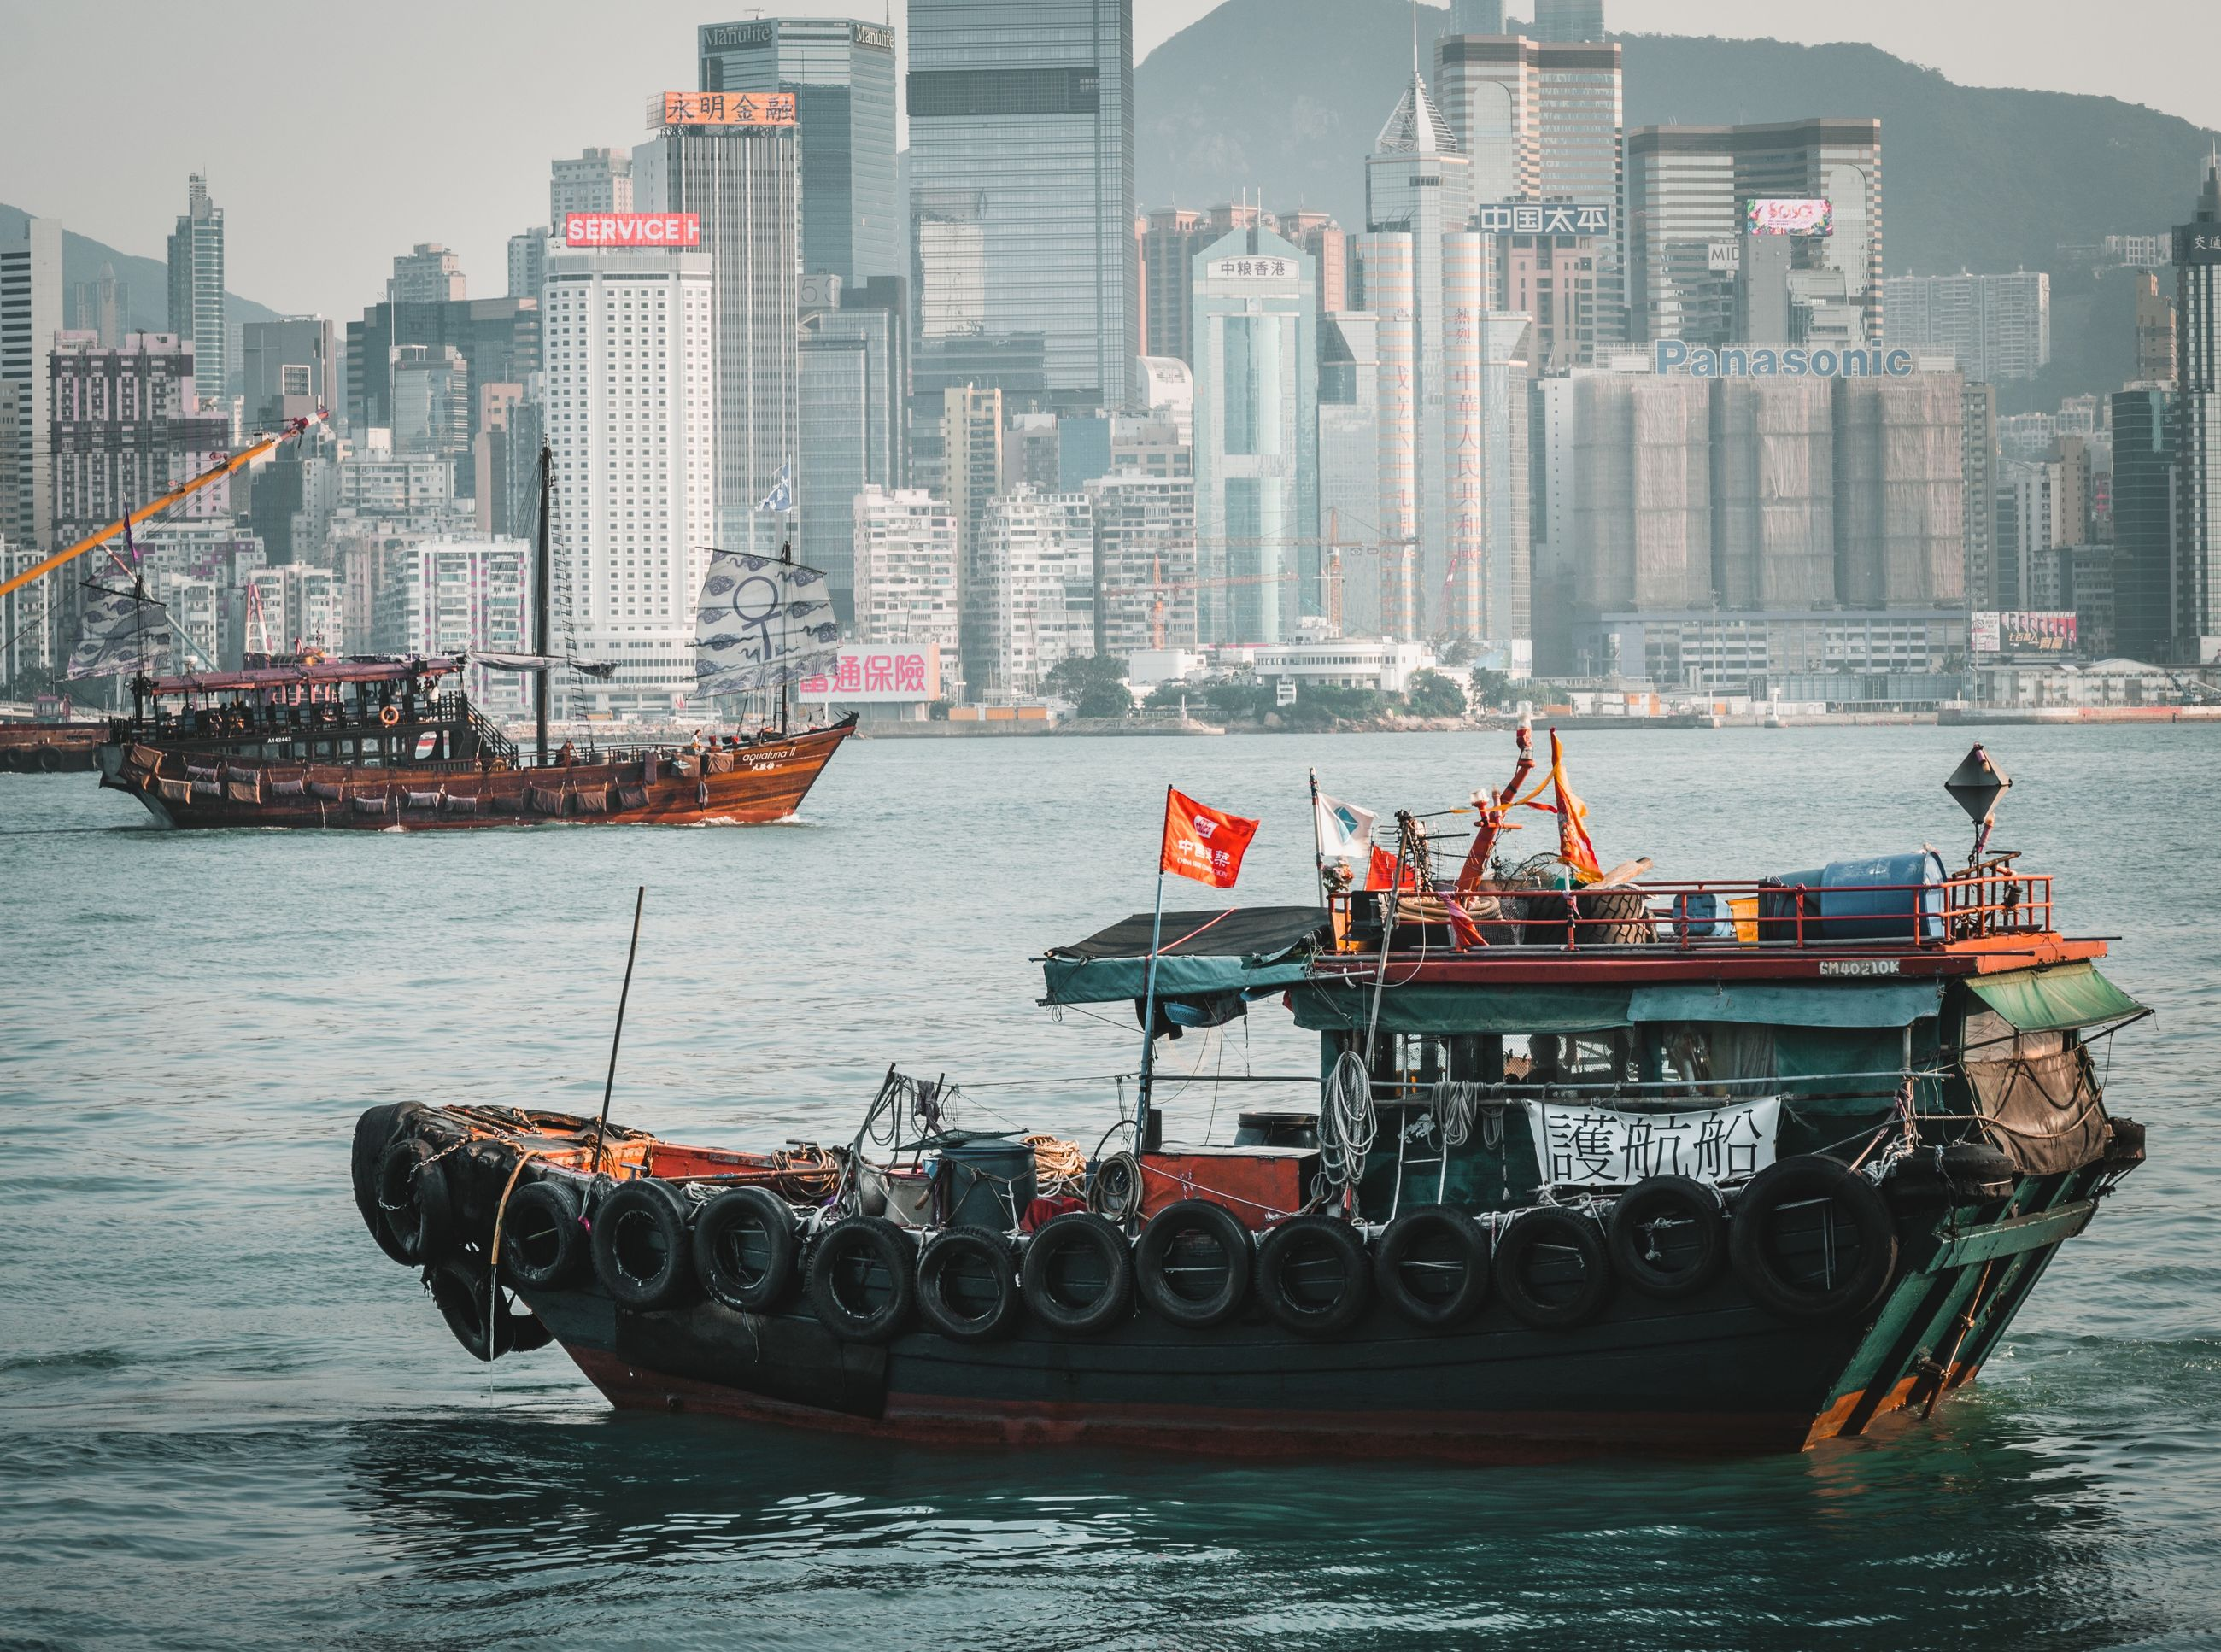 water, nautical vessel, transportation, architecture, waterfront, mode of transportation, built structure, building exterior, city, sea, nature, sky, building, travel, urban skyline, day, outdoors, cityscape, office building exterior, skyscraper